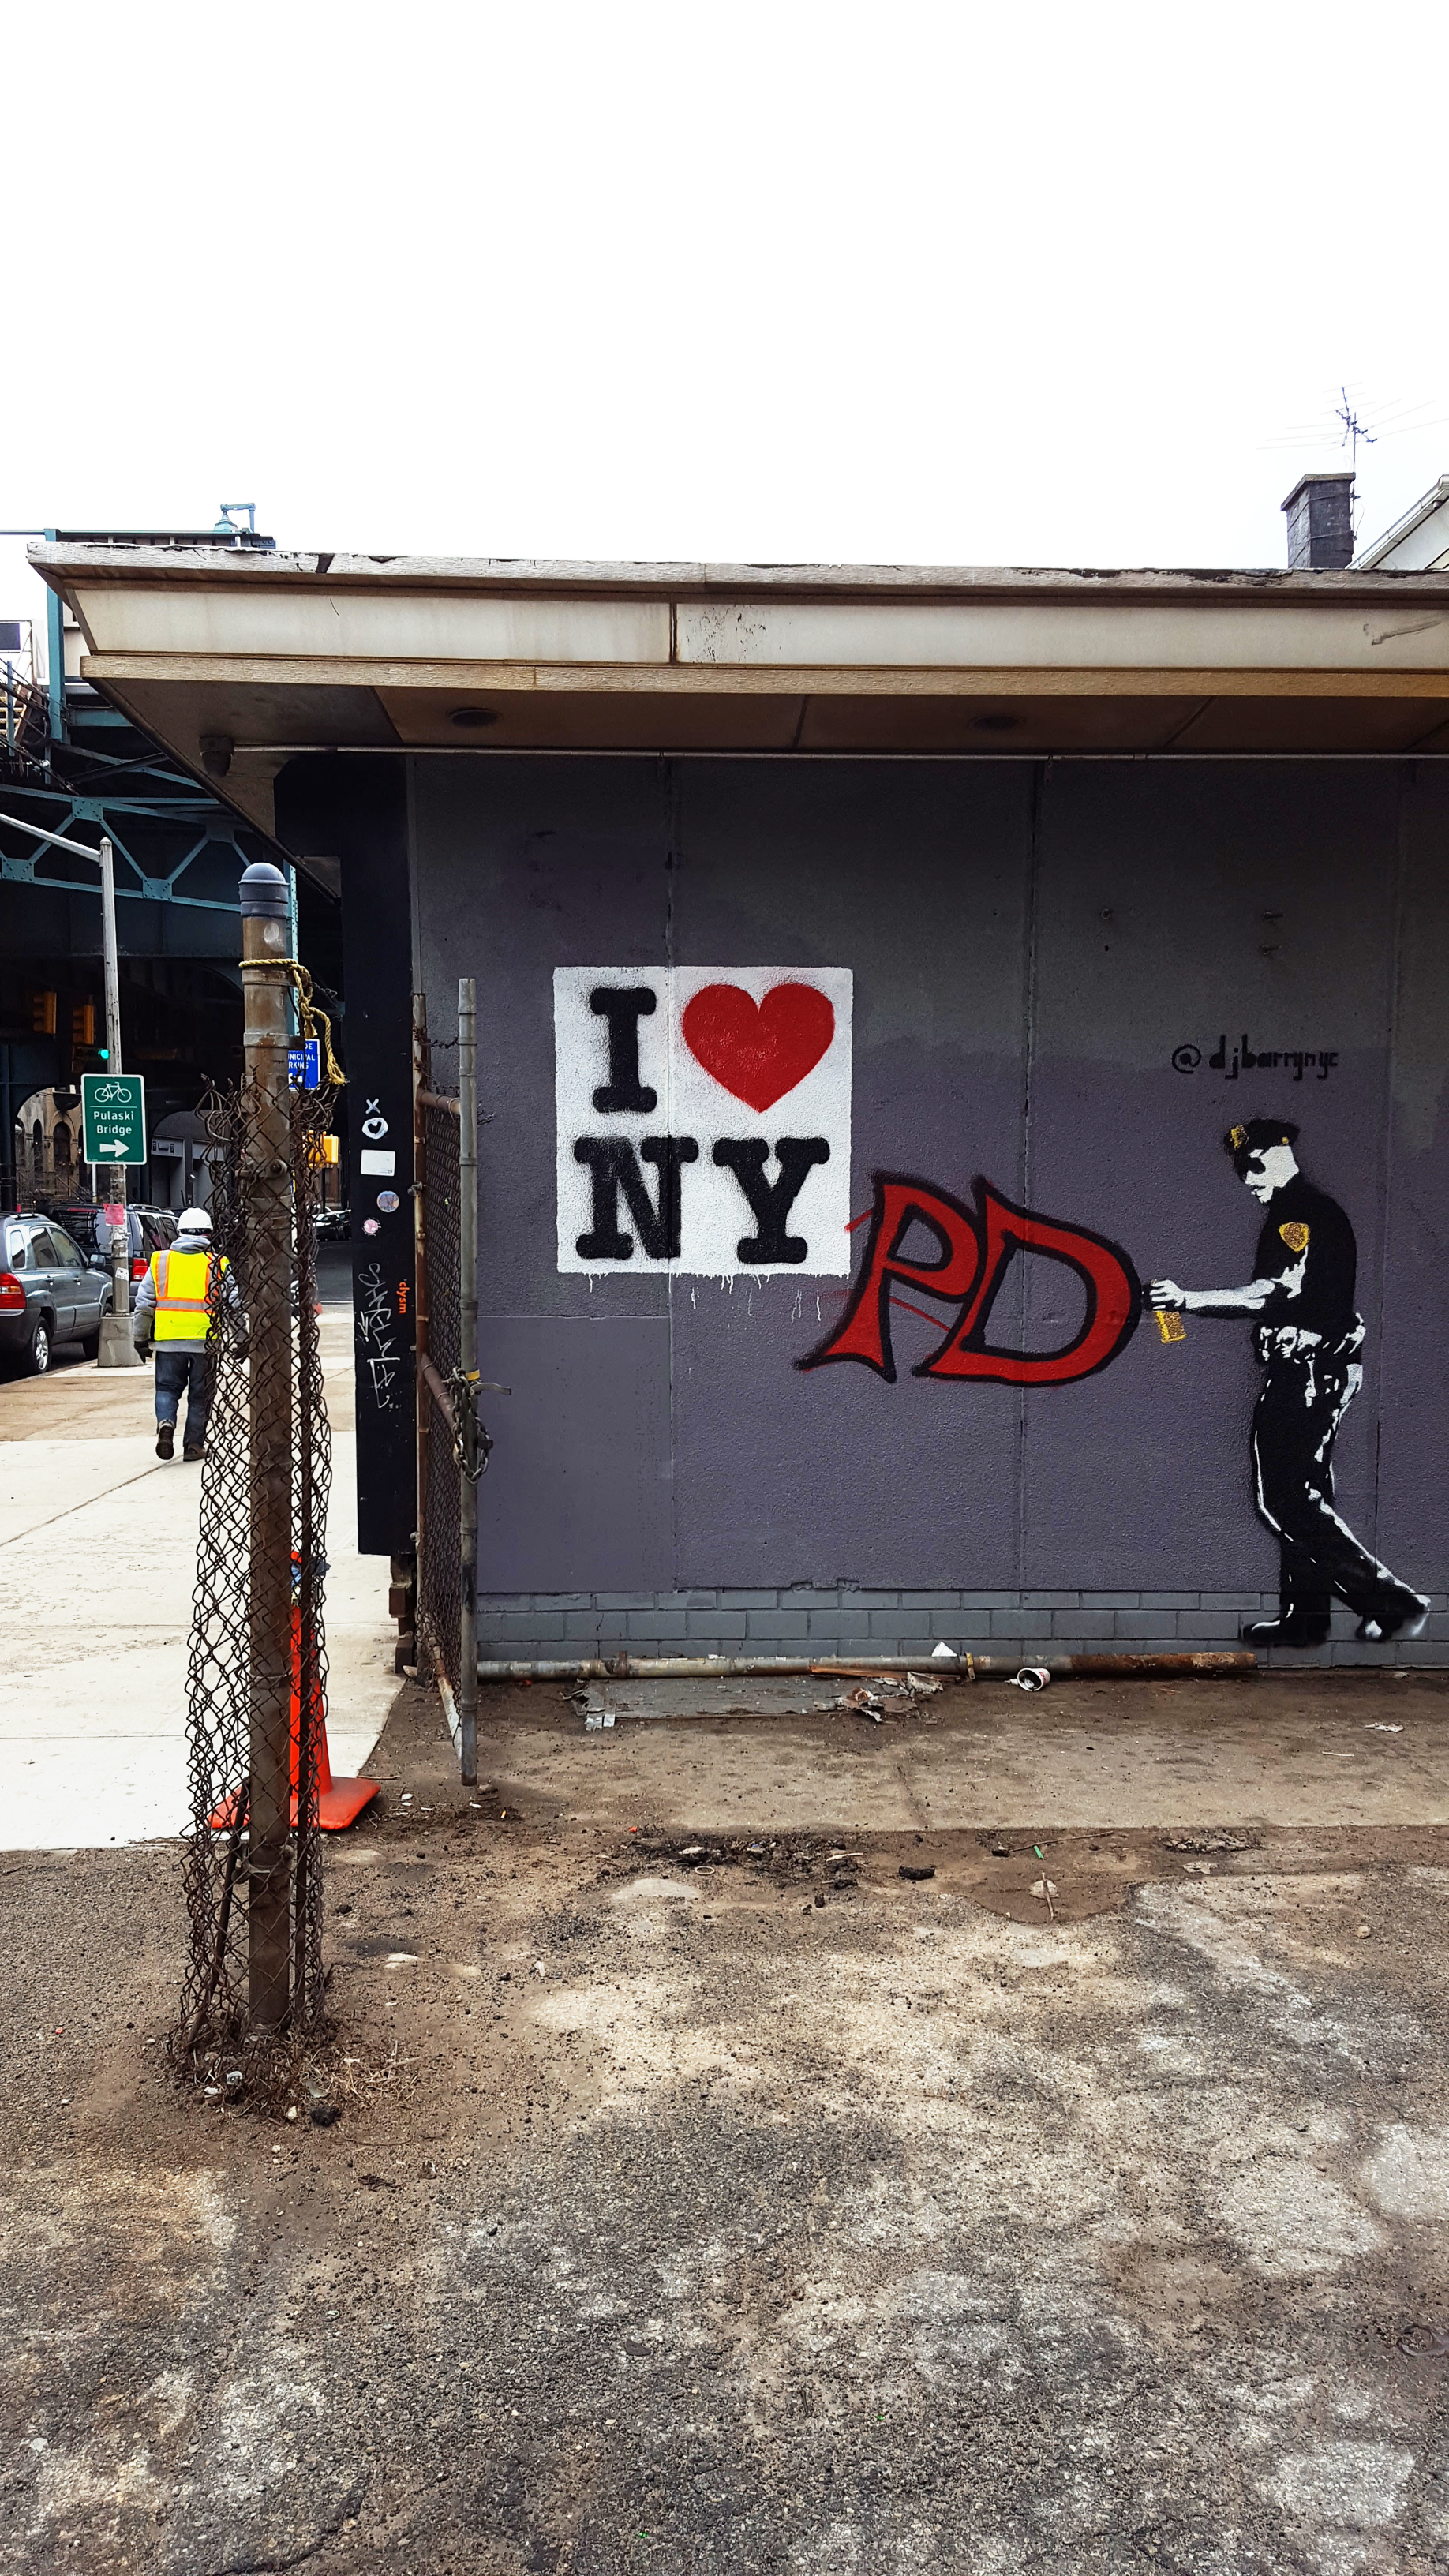 nypd4